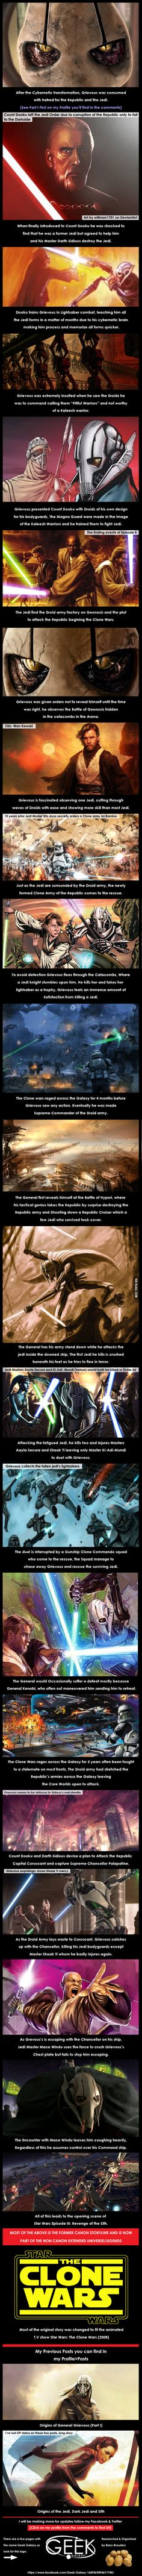 Origins of General Grievous (Part II) Star Wars History - 9GAG